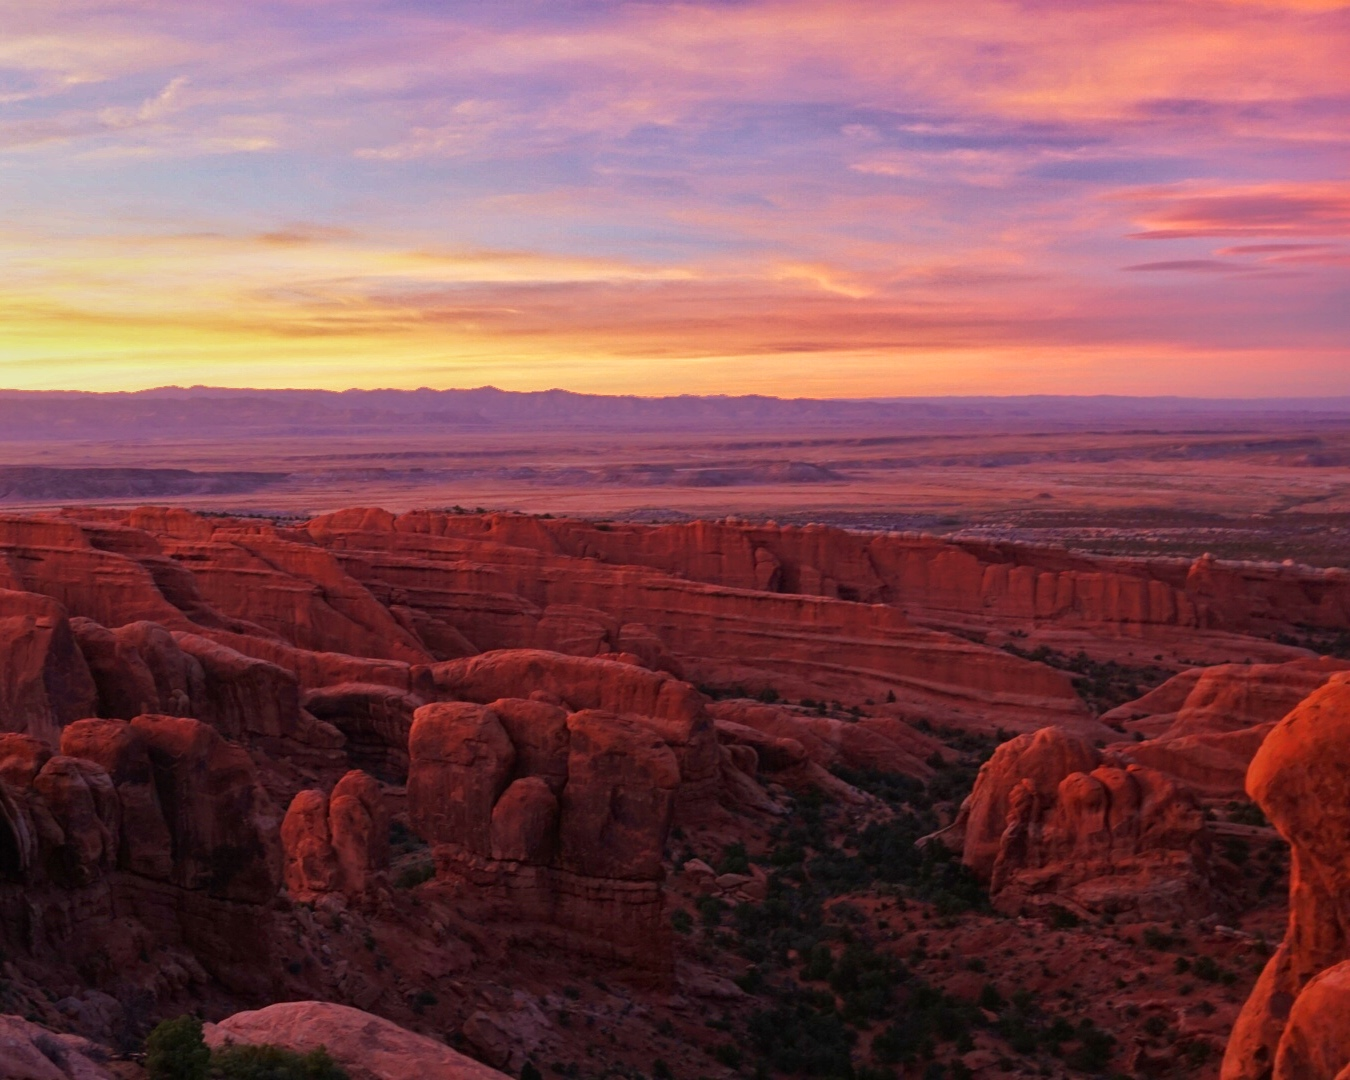 Sunset over Arches National Park. June, 2017